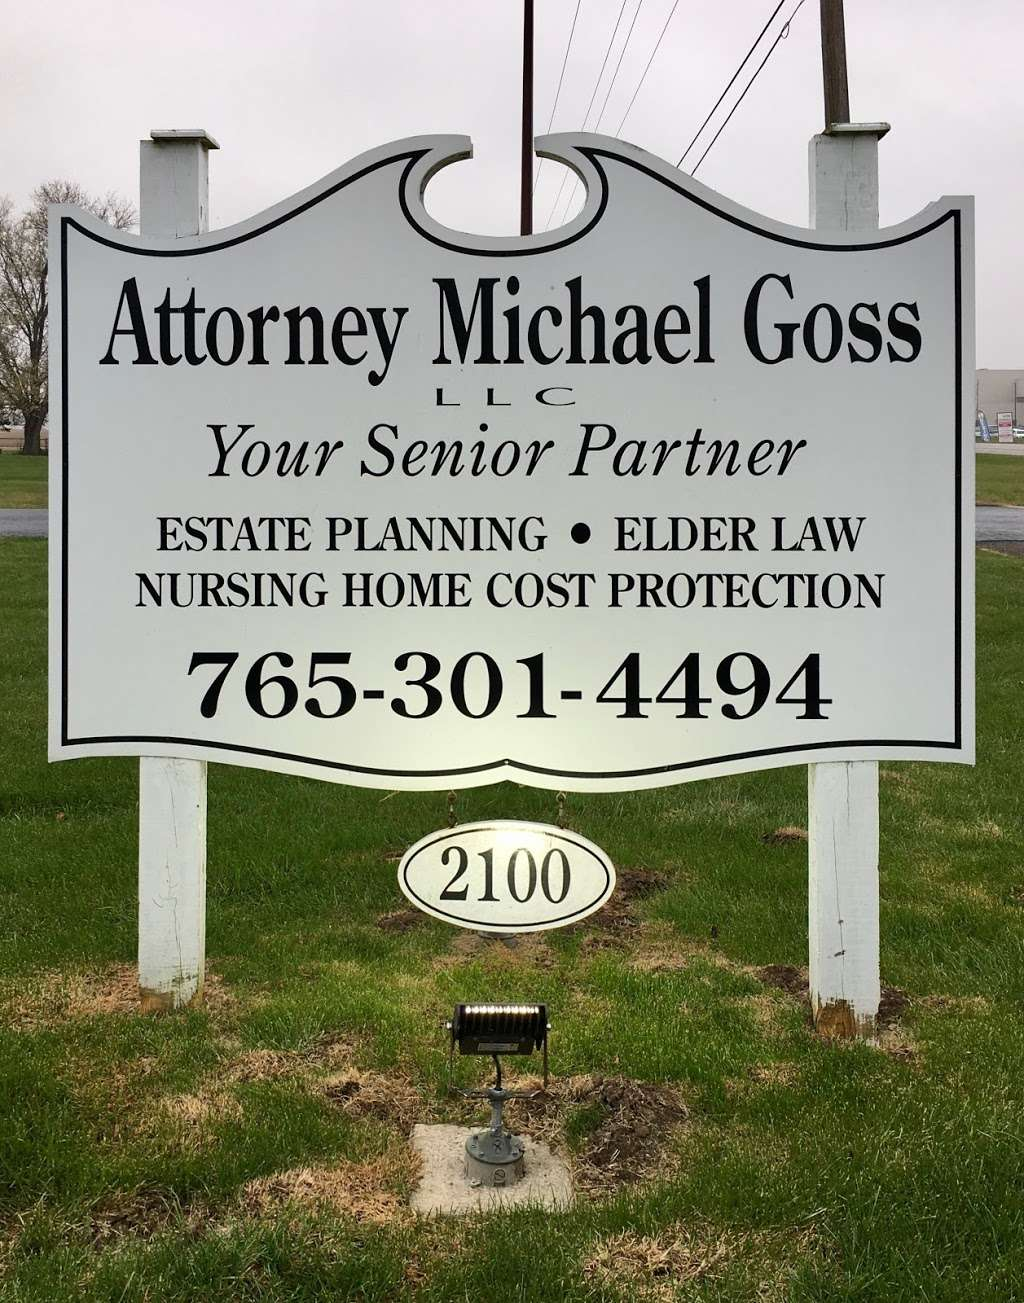 Attorney Michael Goss - lawyer  | Photo 1 of 5 | Address: 2100 IN-240, Greencastle, IN 46135, USA | Phone: (765) 301-4494